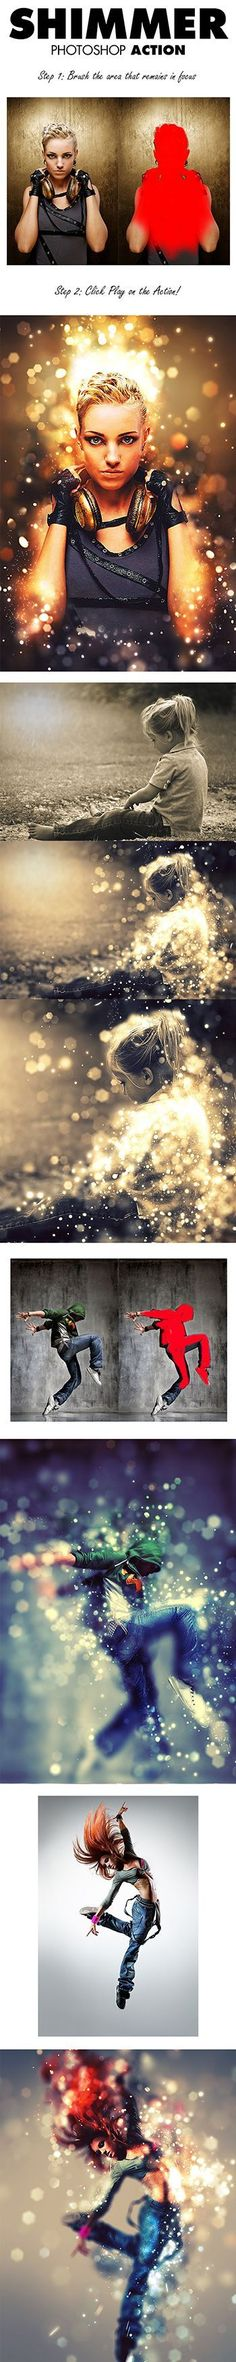 4-Shimmer Photoshop Action-                                                                                                                                                     More